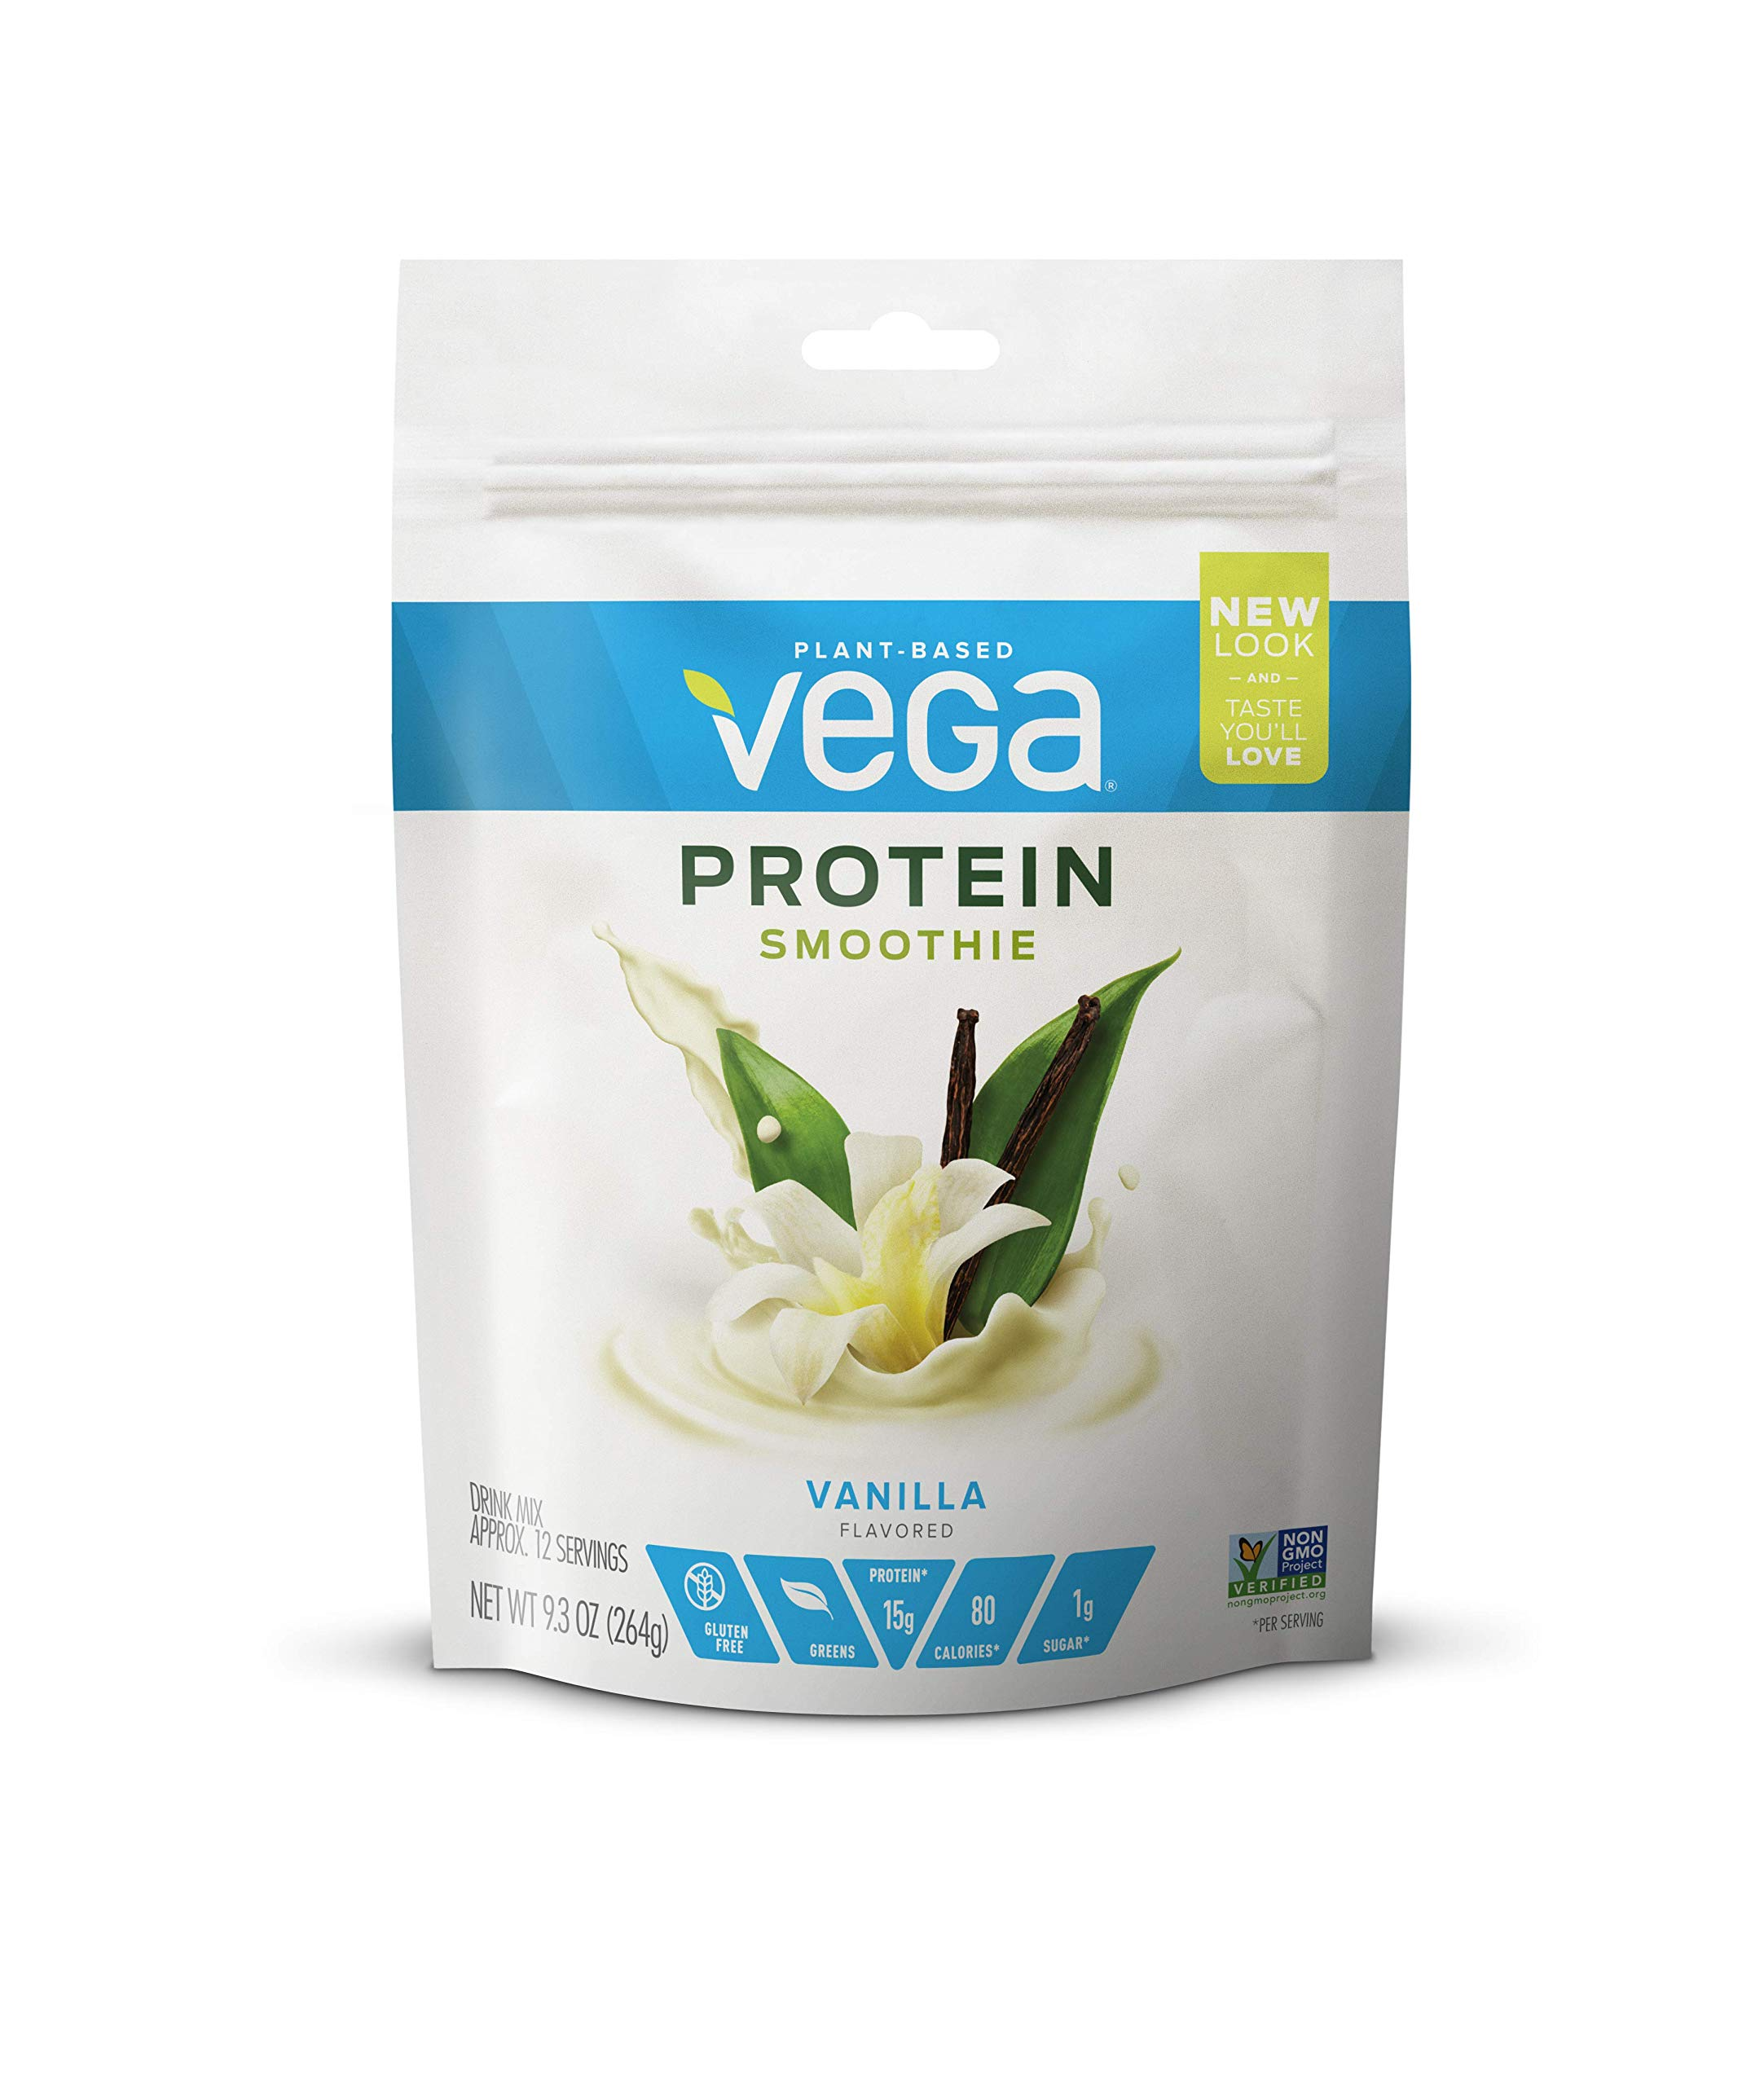 Vega Protein Smoothie, Vanilla, 12 Servings, 9.3 oz Pouch, Plant Based Vegan Protein Powder, Keto-Friendly, Gluten Free,  Non Dairy, Vegan, Non Soy, Stevia Free, Non GMO by VEGA